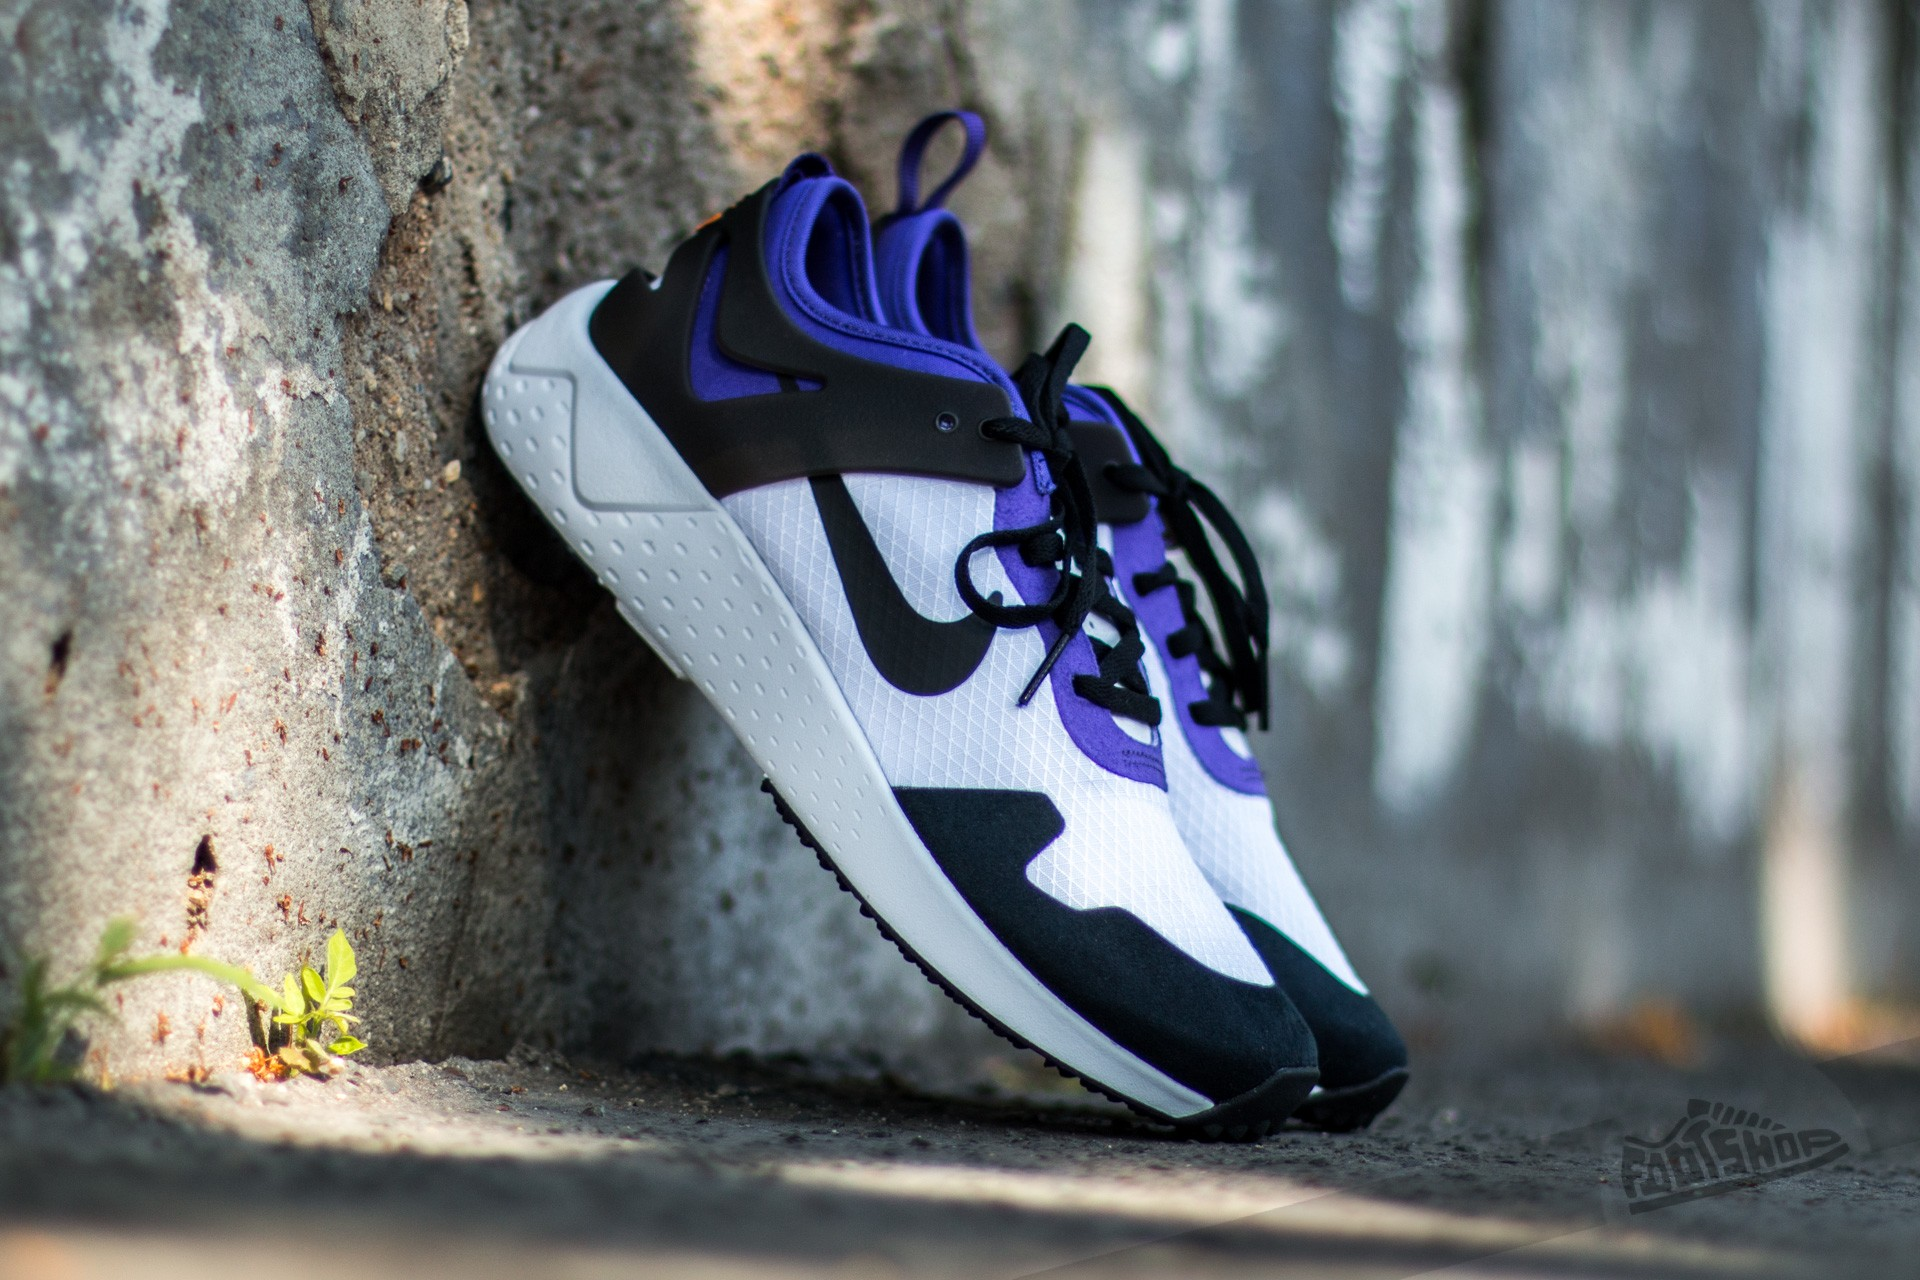 Nike Zoom Lite QS White/ Black-Court Purple-Bright Citrus